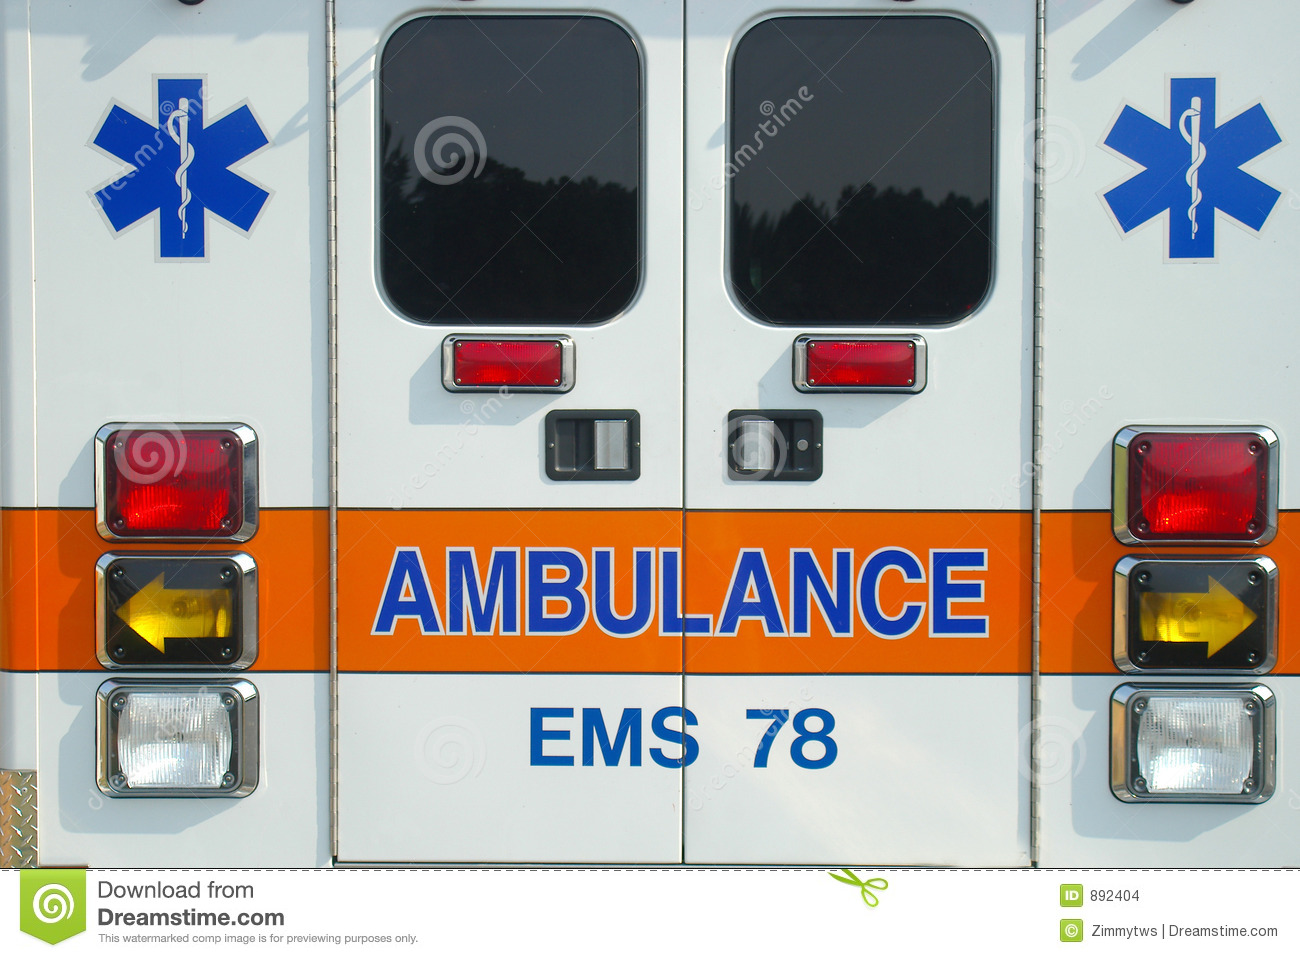 Ambulance Back Stock Images - Image: 892404